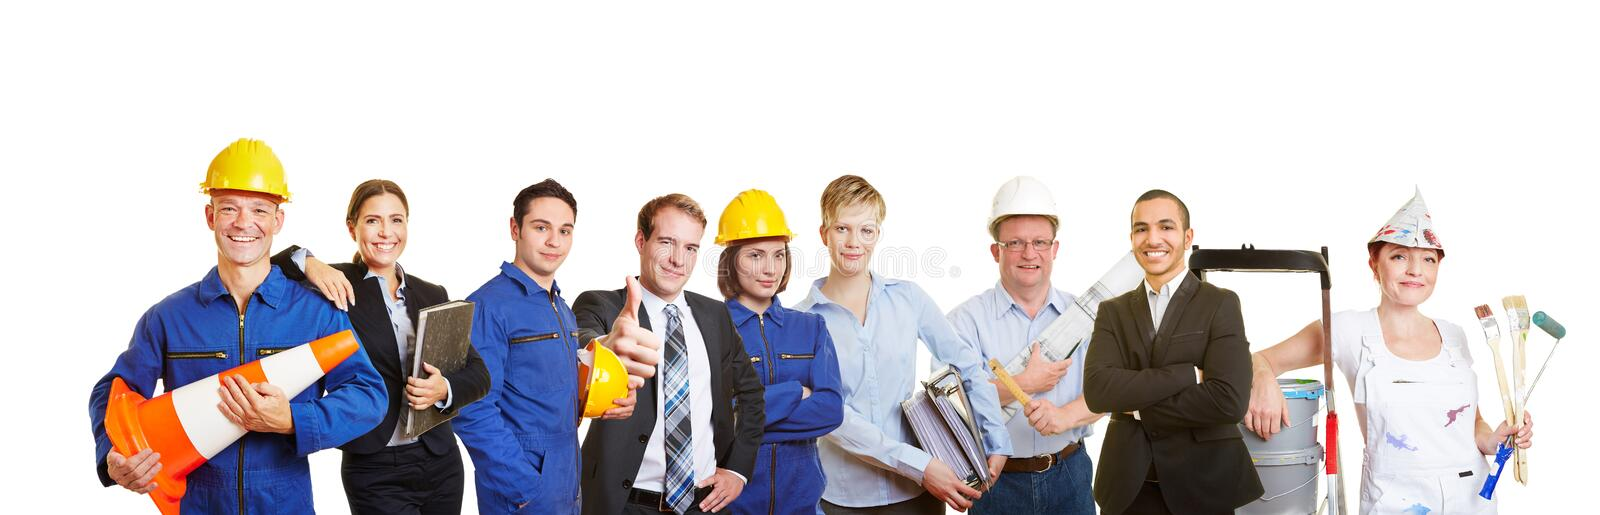 Workers and business people royalty free stock image